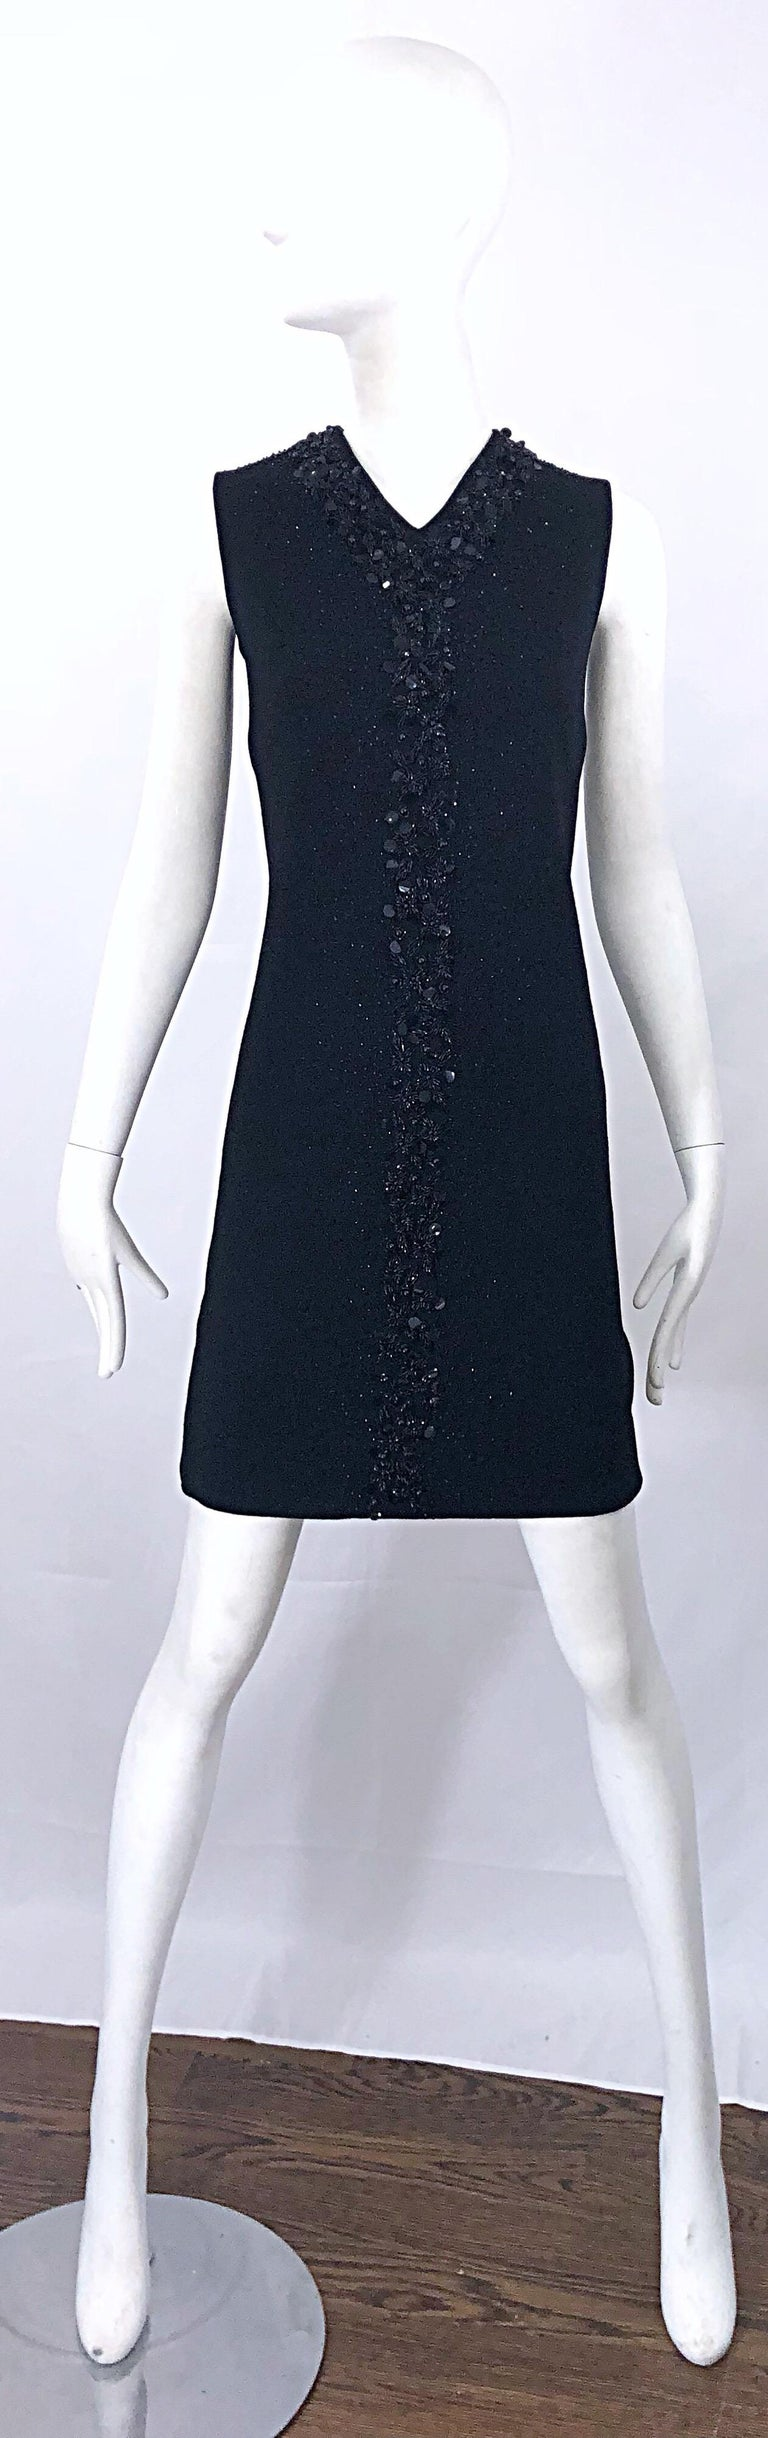 Utterly chic vintage 1960s ST. ANDREWS black zephyr wool British Hong Kong beaded and sequined shift dress! Features 100% zephyr wool that has some stretch, and is fully lined. Thousands of hand-sewn black sequins, beads and paillettes throughout